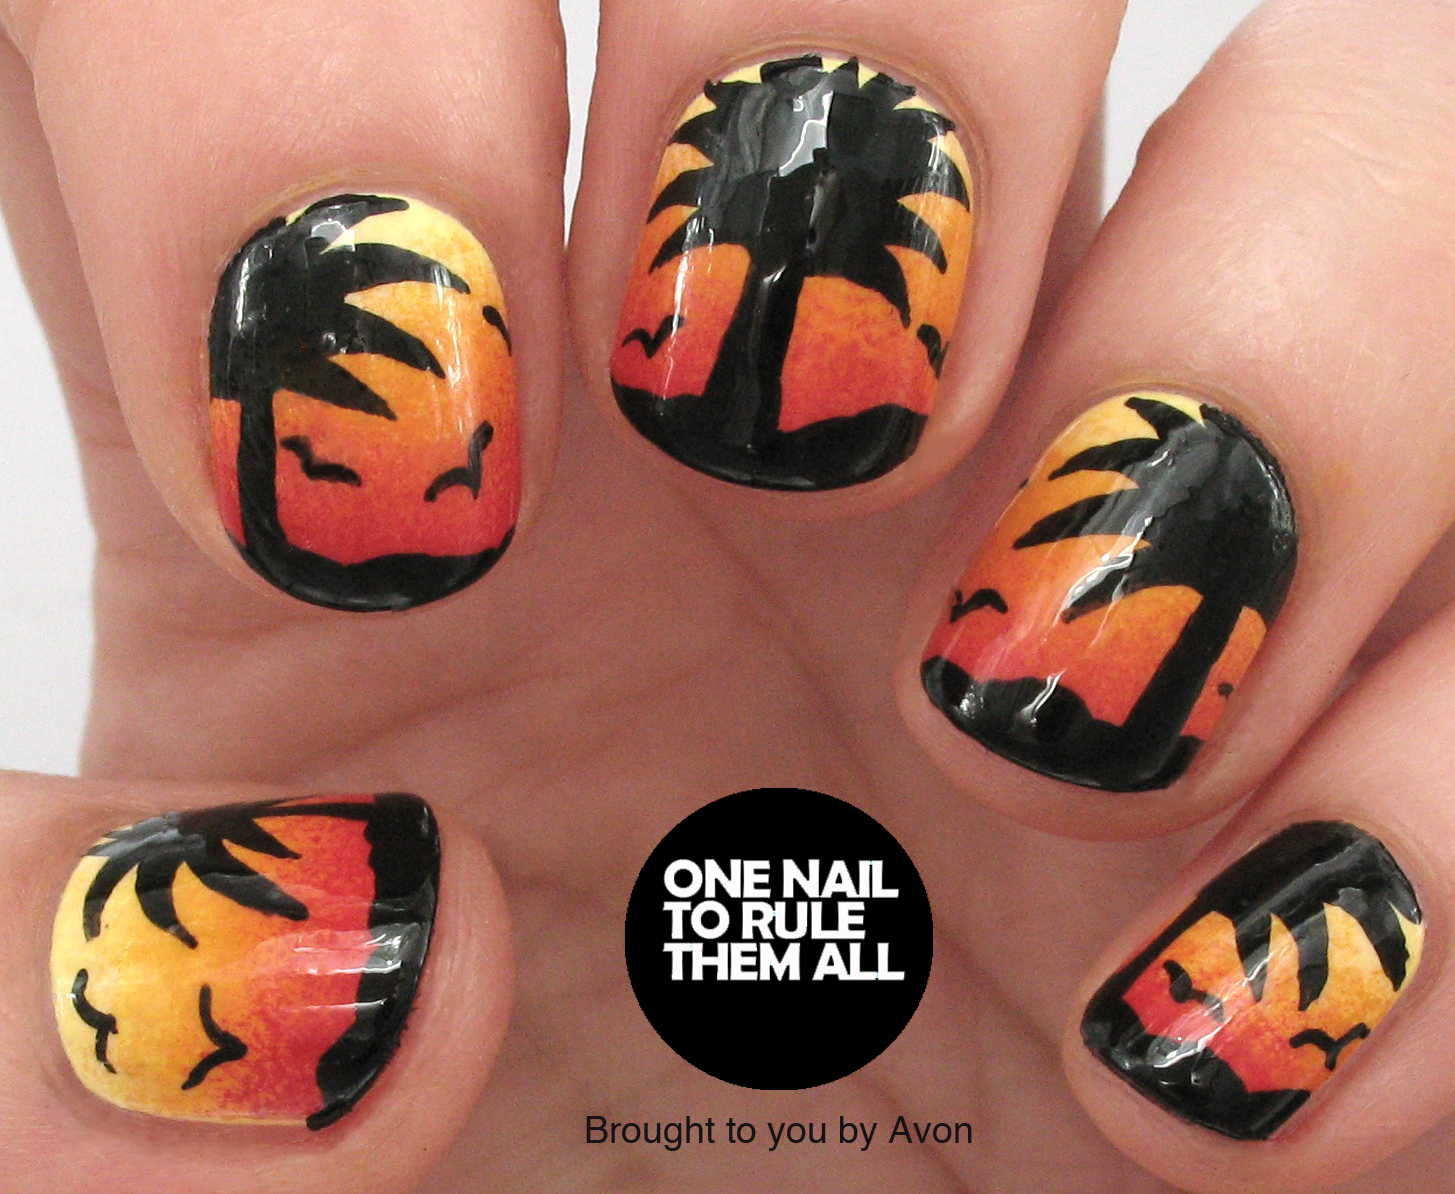 One Nail To Rule Them All Sunset Nail Art For Avon